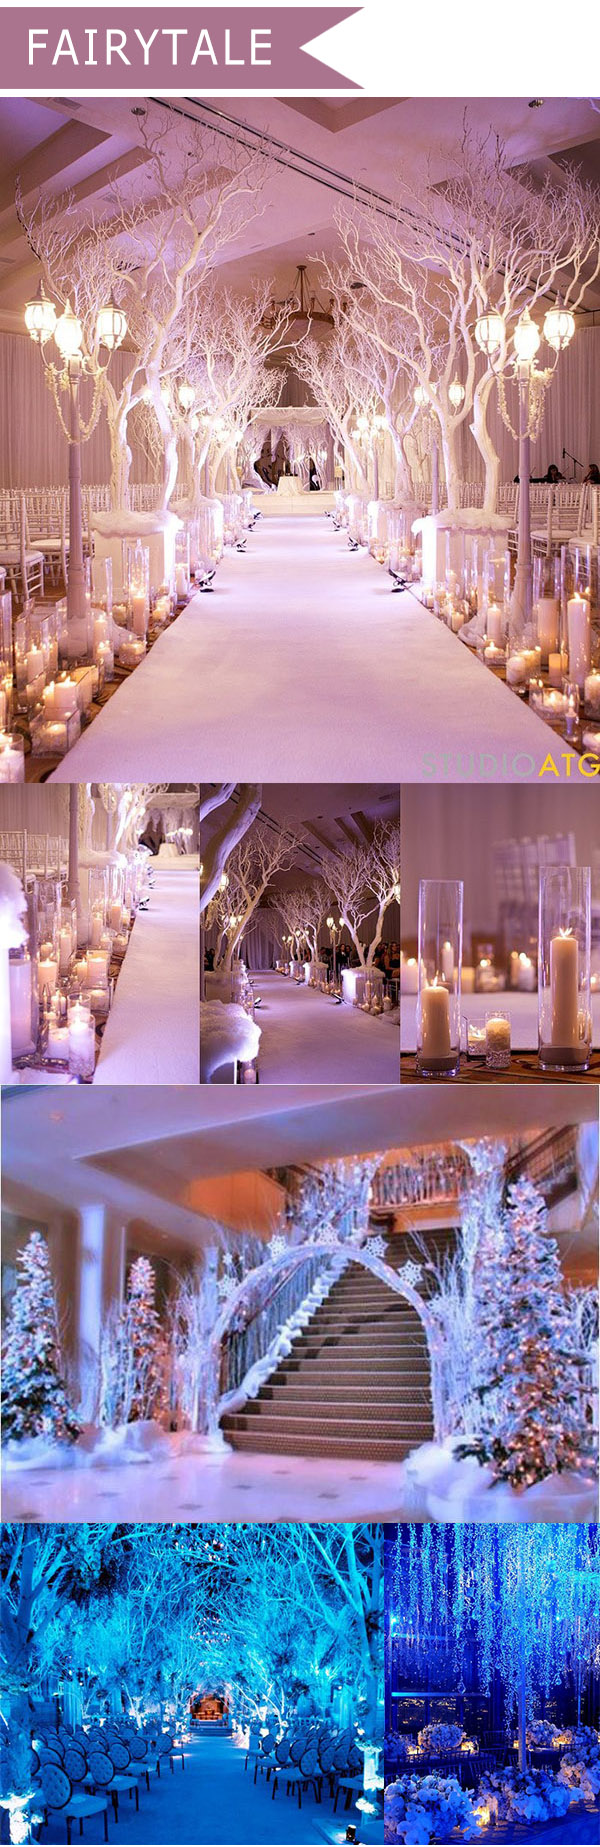 10 trending wedding theme ideas for 2016 elegantweddinginvites fairytale themed wedding decoration ideas for 2016 trends junglespirit Choice Image